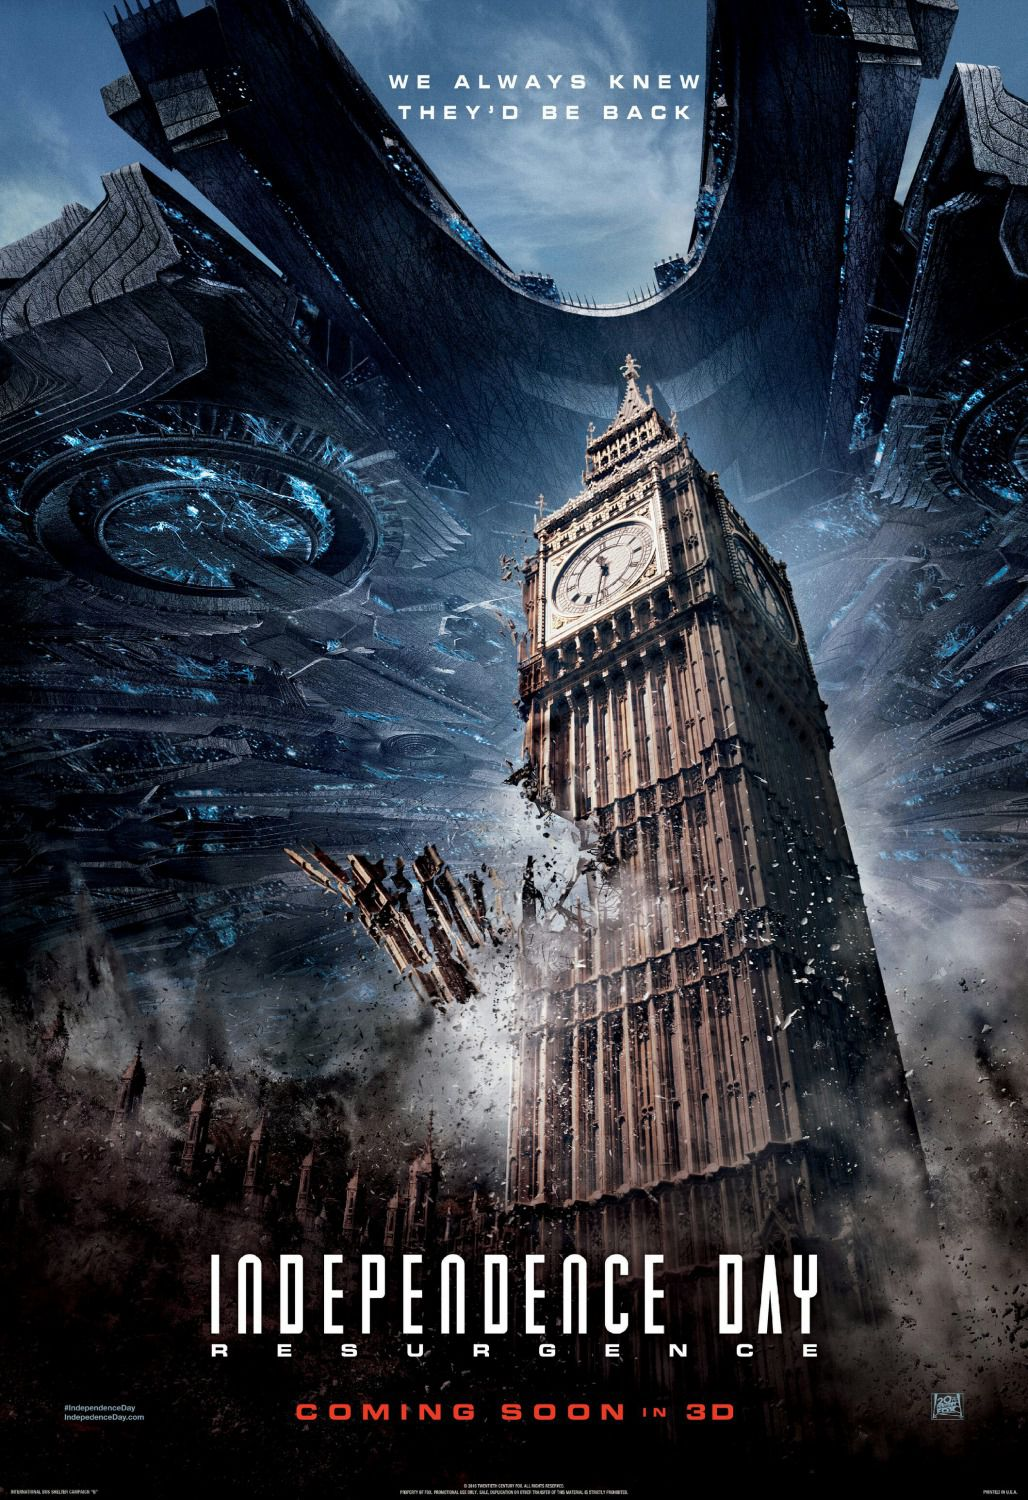 Independence Day Resurgence - film poster London